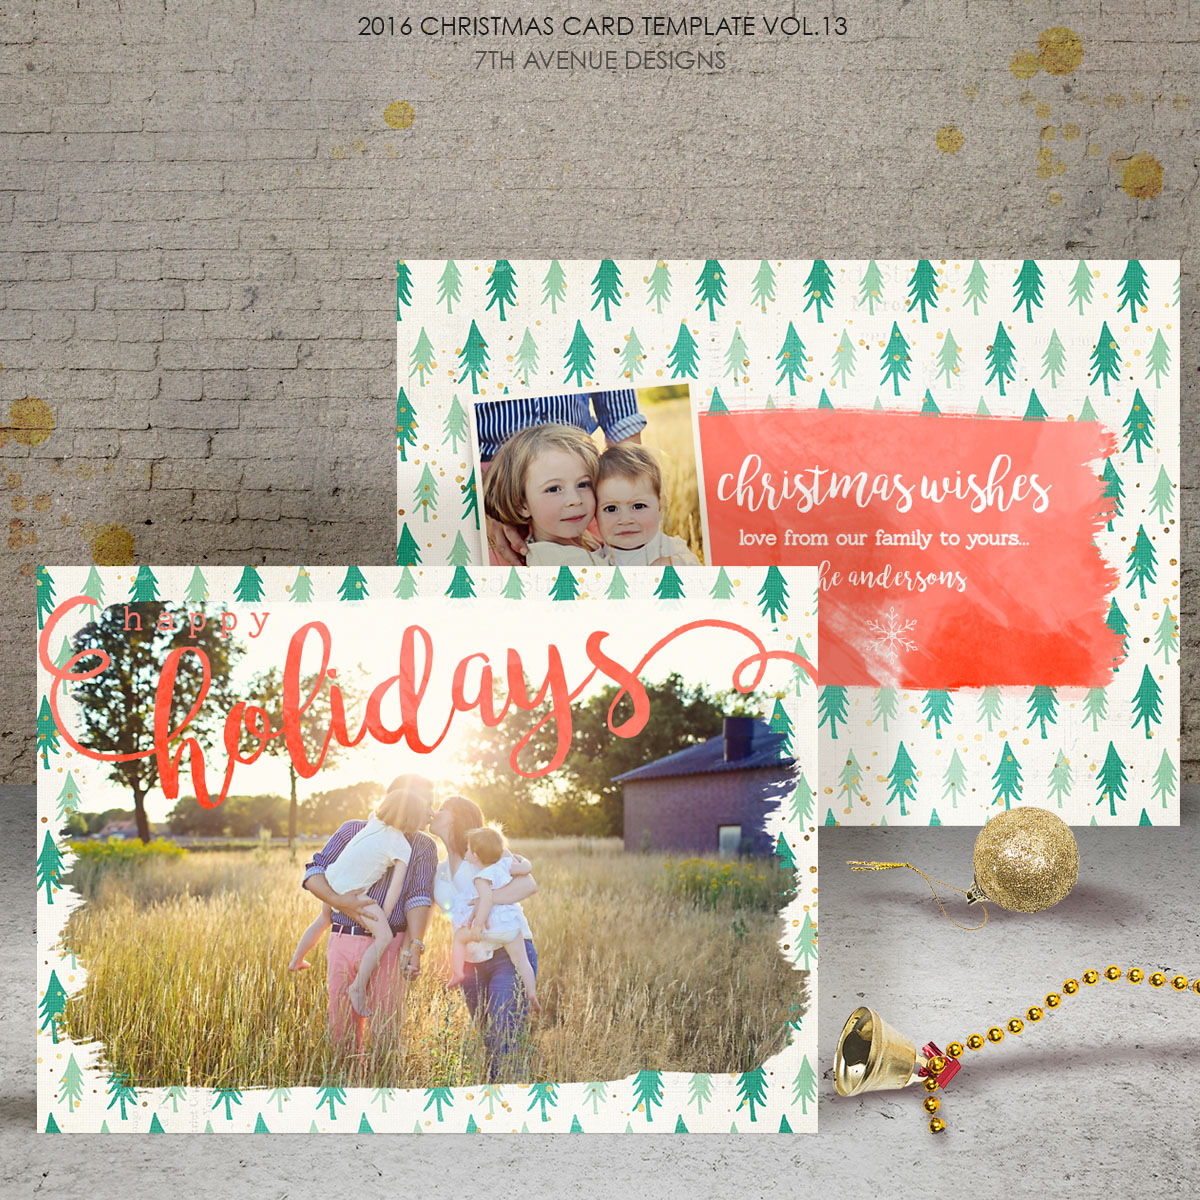 2016 Christmas Card Templates vol.13 -- 7x5 inch card template